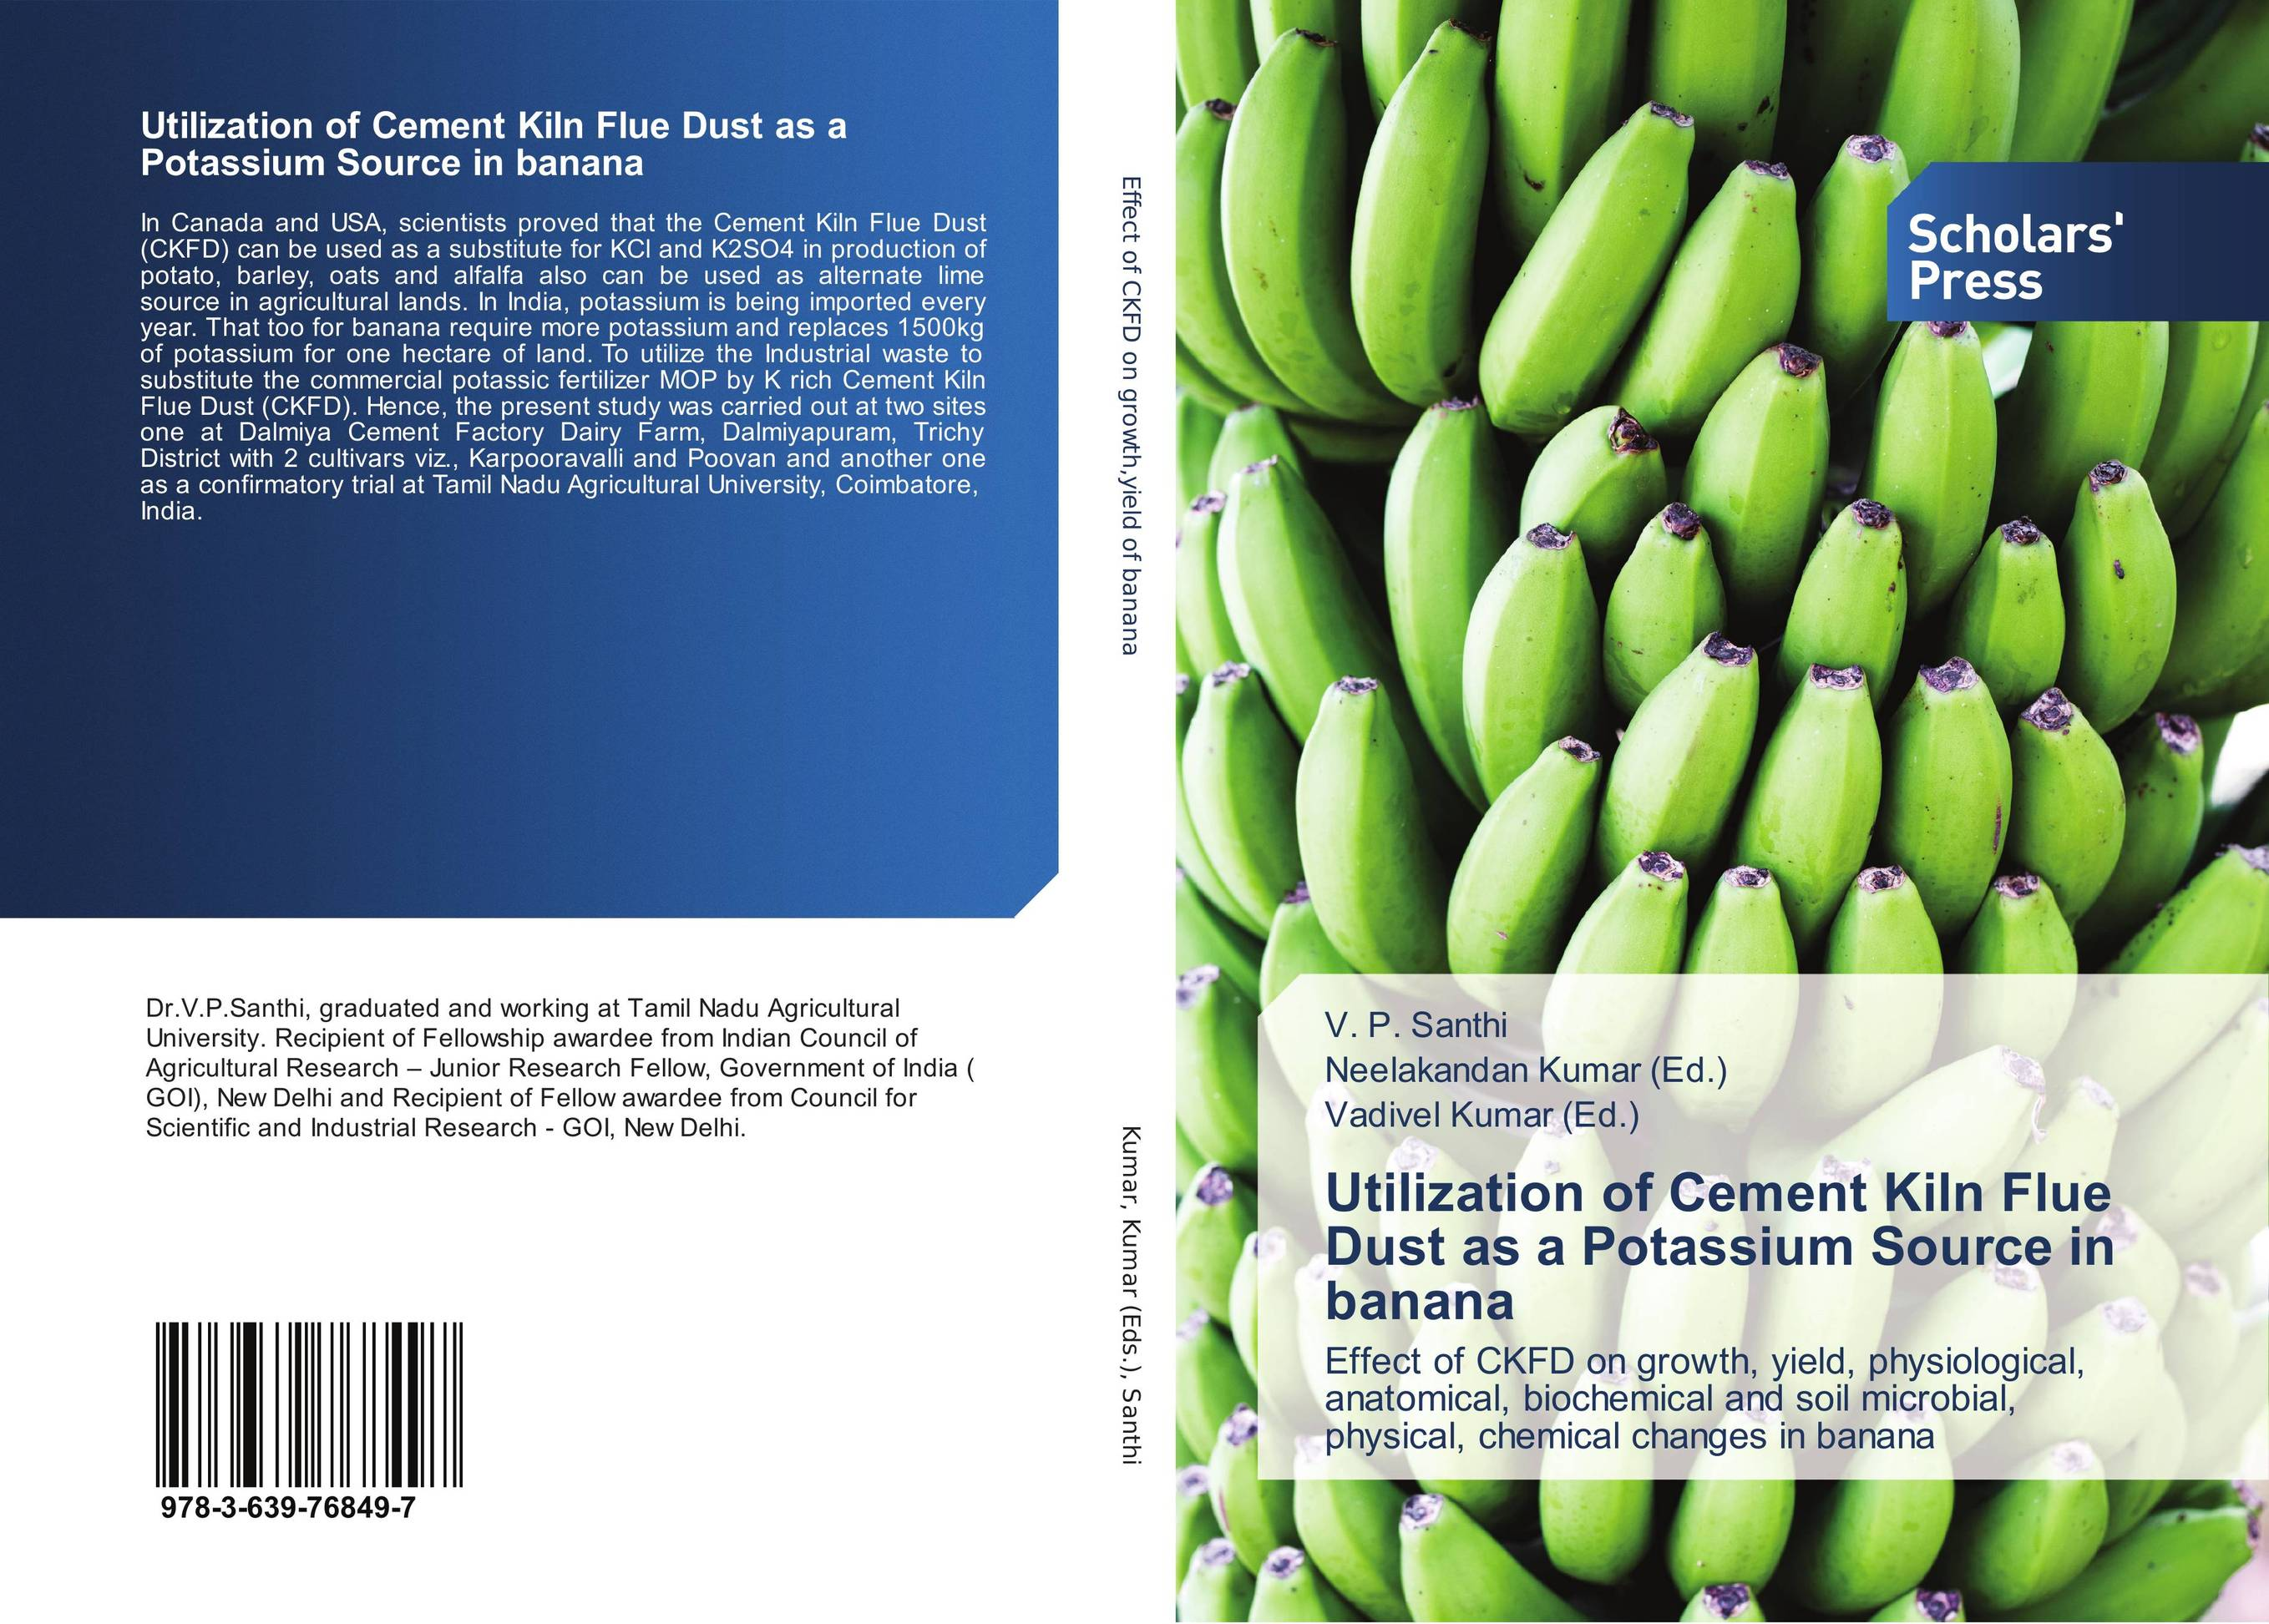 Utilization of Cement Kiln Flue Dust as a Potassium Source in banana colonial industrialiazation and labor in korea – the onoda cement factory